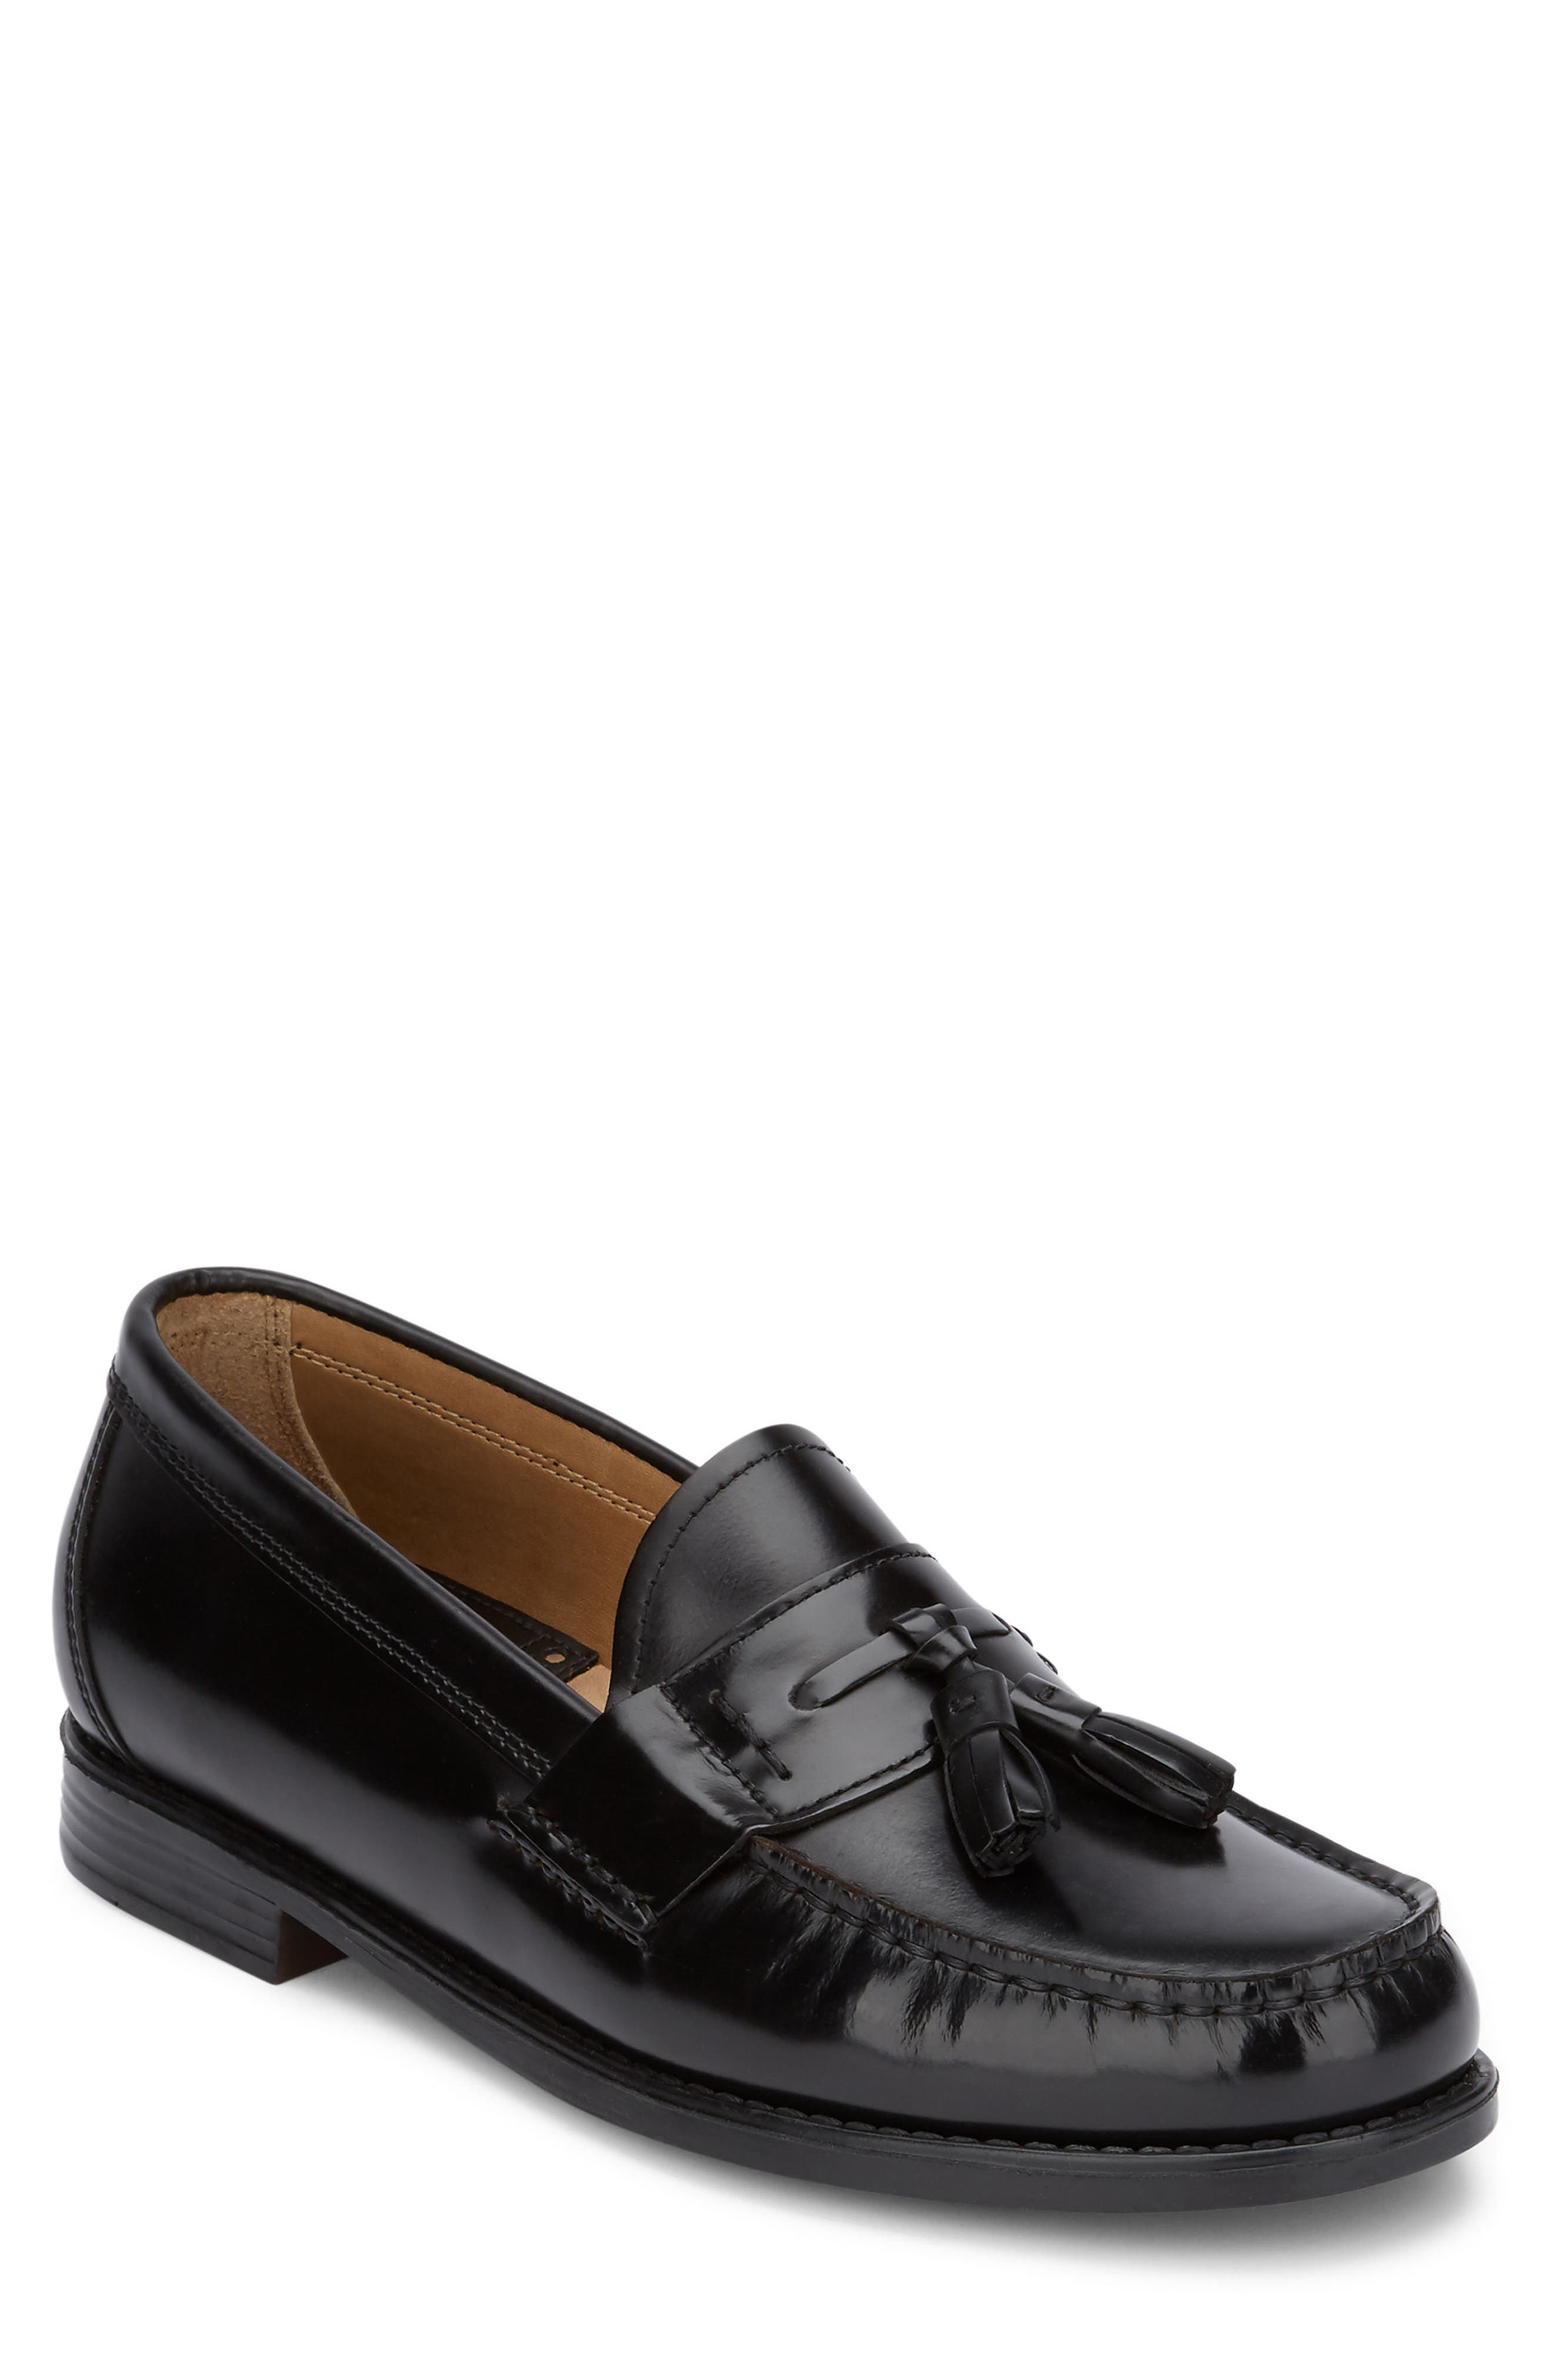 Main Image - G.H. Bass & Co. Wallace Tassel Loafer (Men)